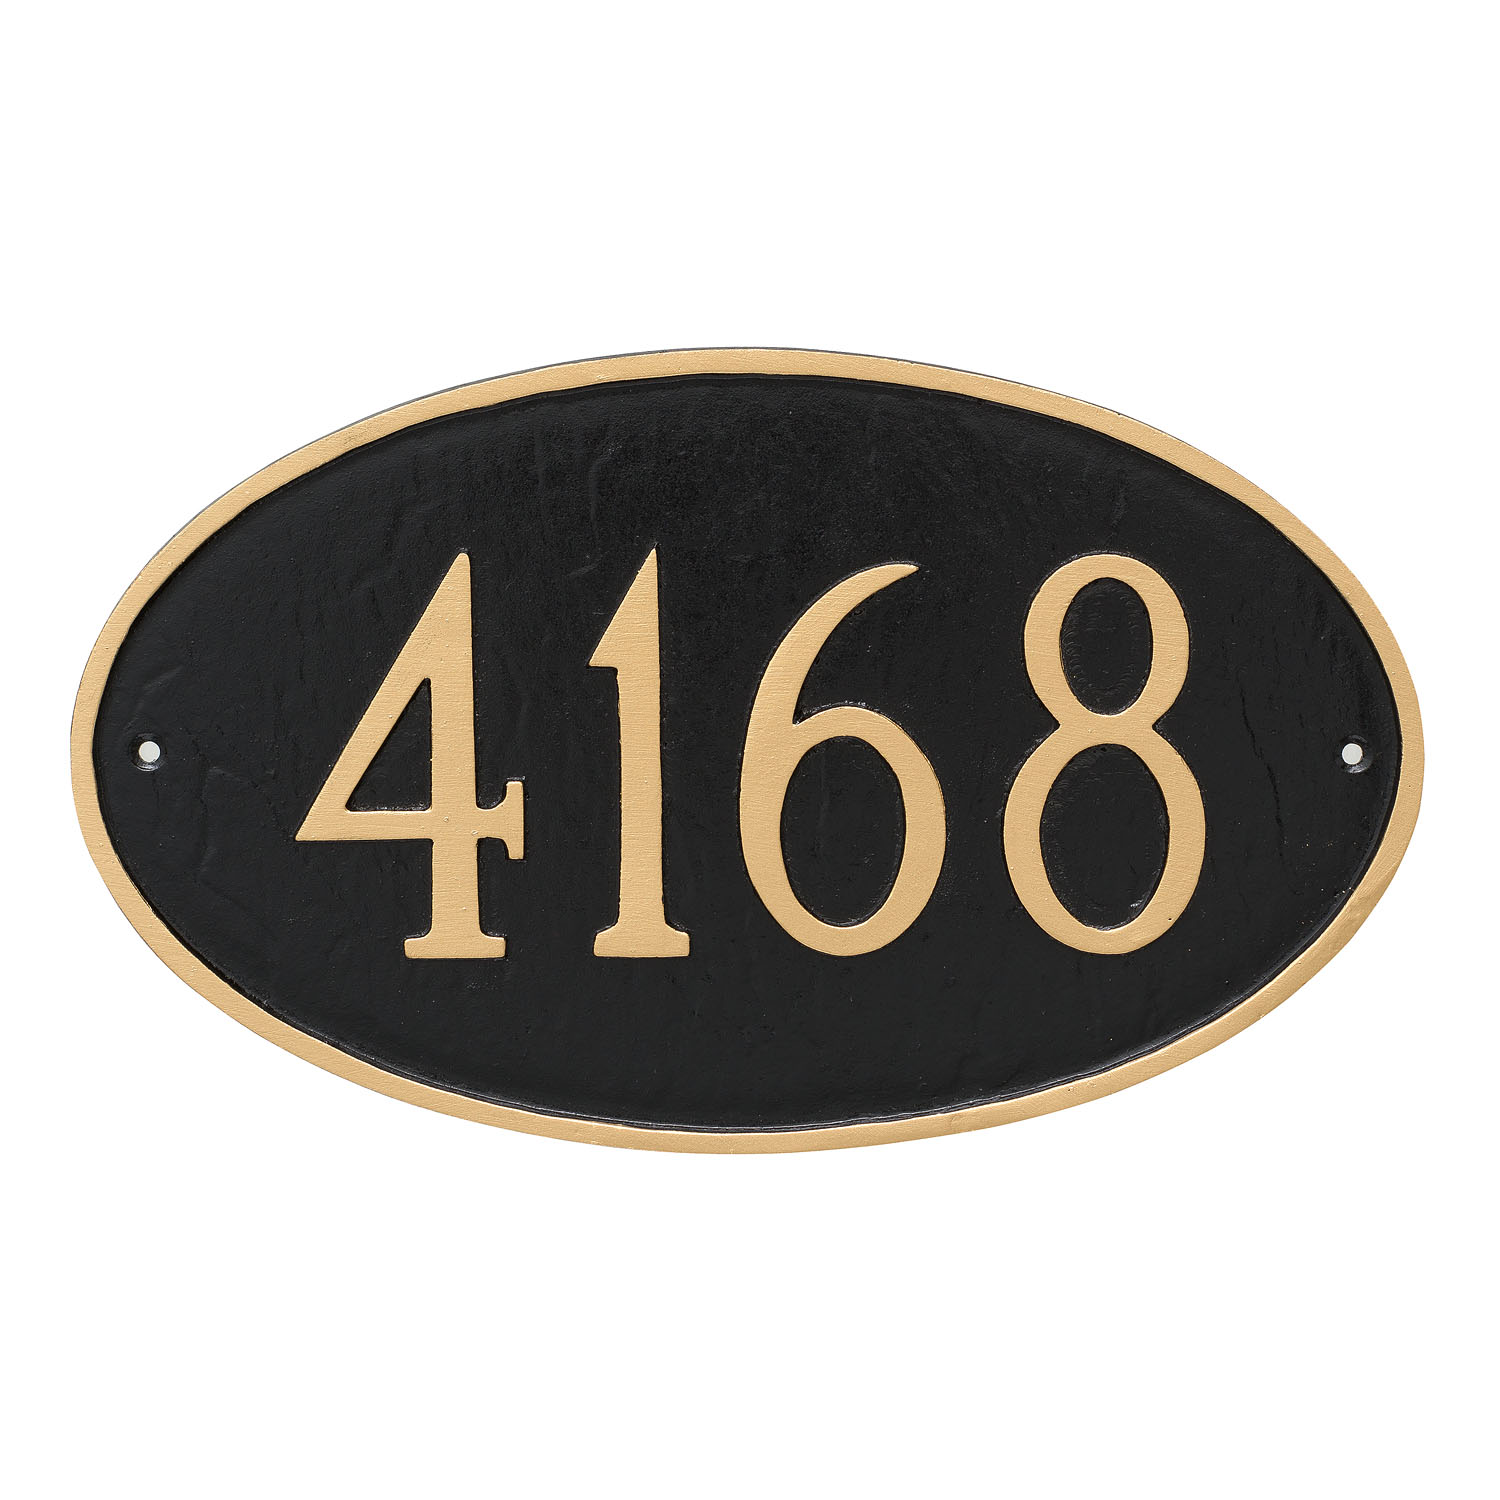 Oval Address Plaque - Large